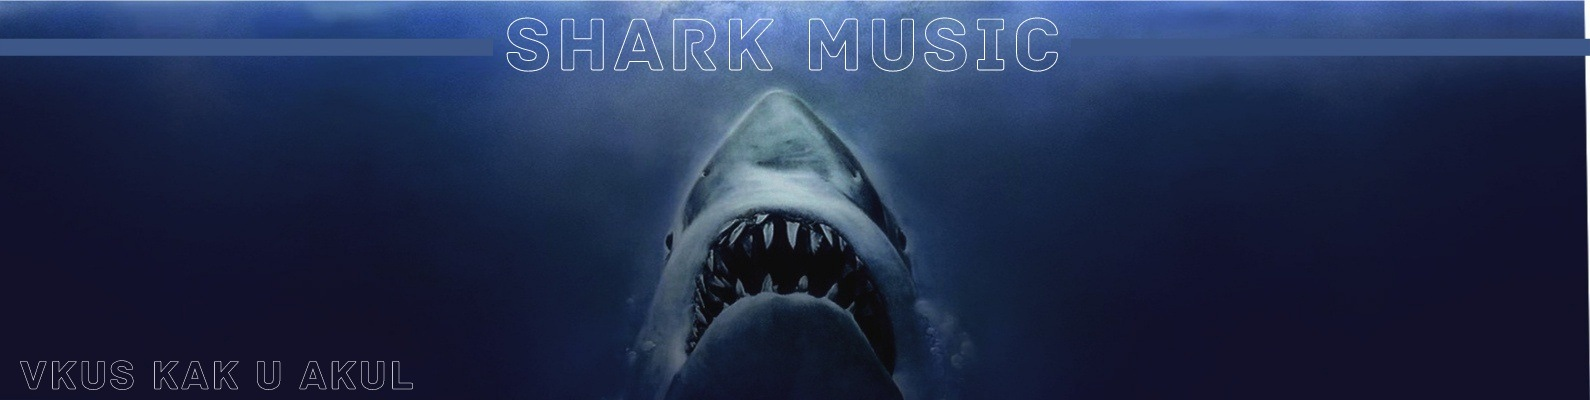 SHARK MUSIC Player MP3 for Android - APK Download